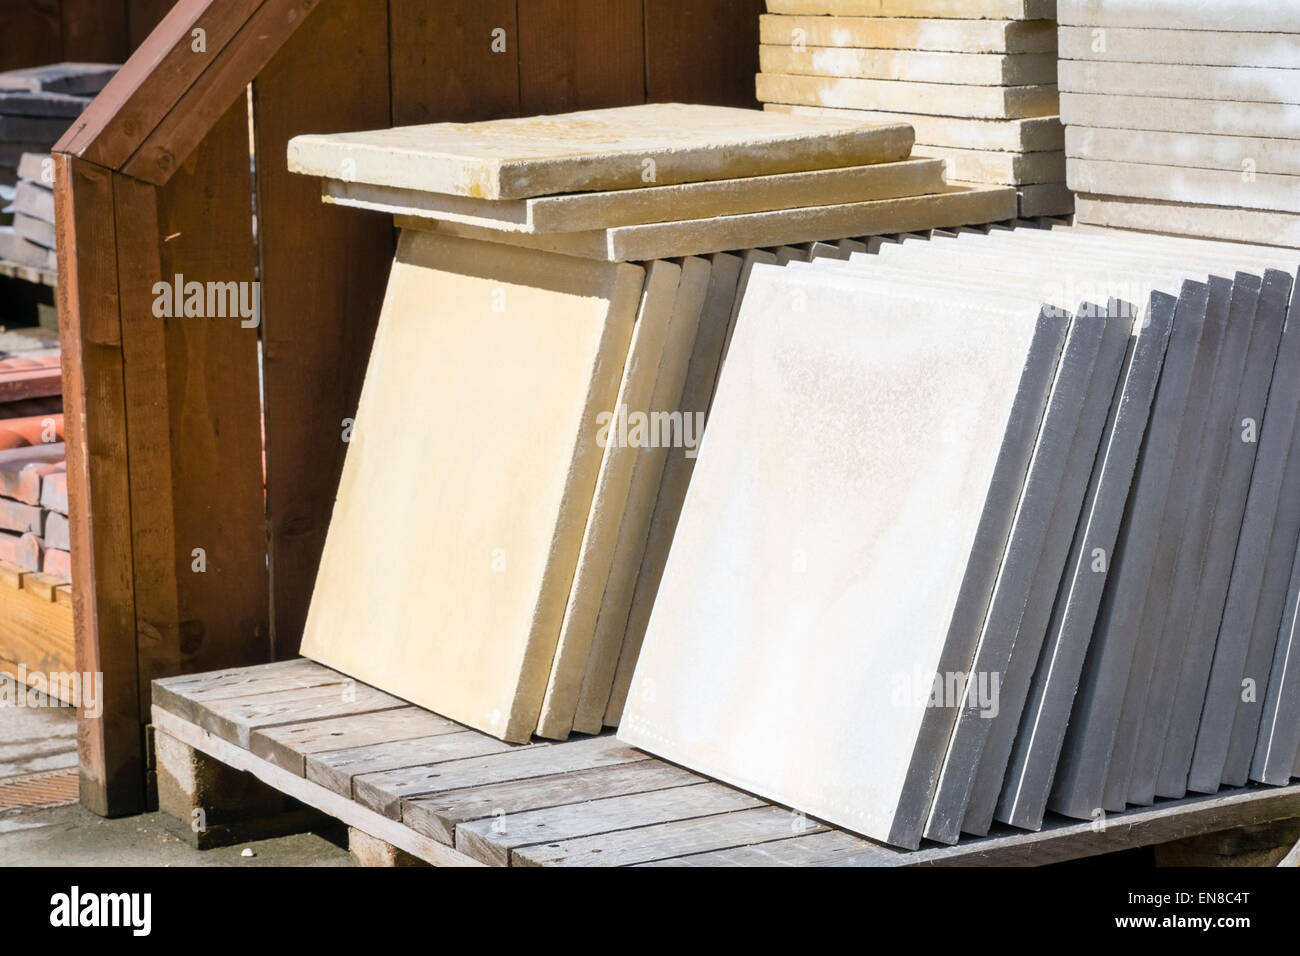 New paving slabs stacked on a pallet ready for sale, UK. - Stock Image